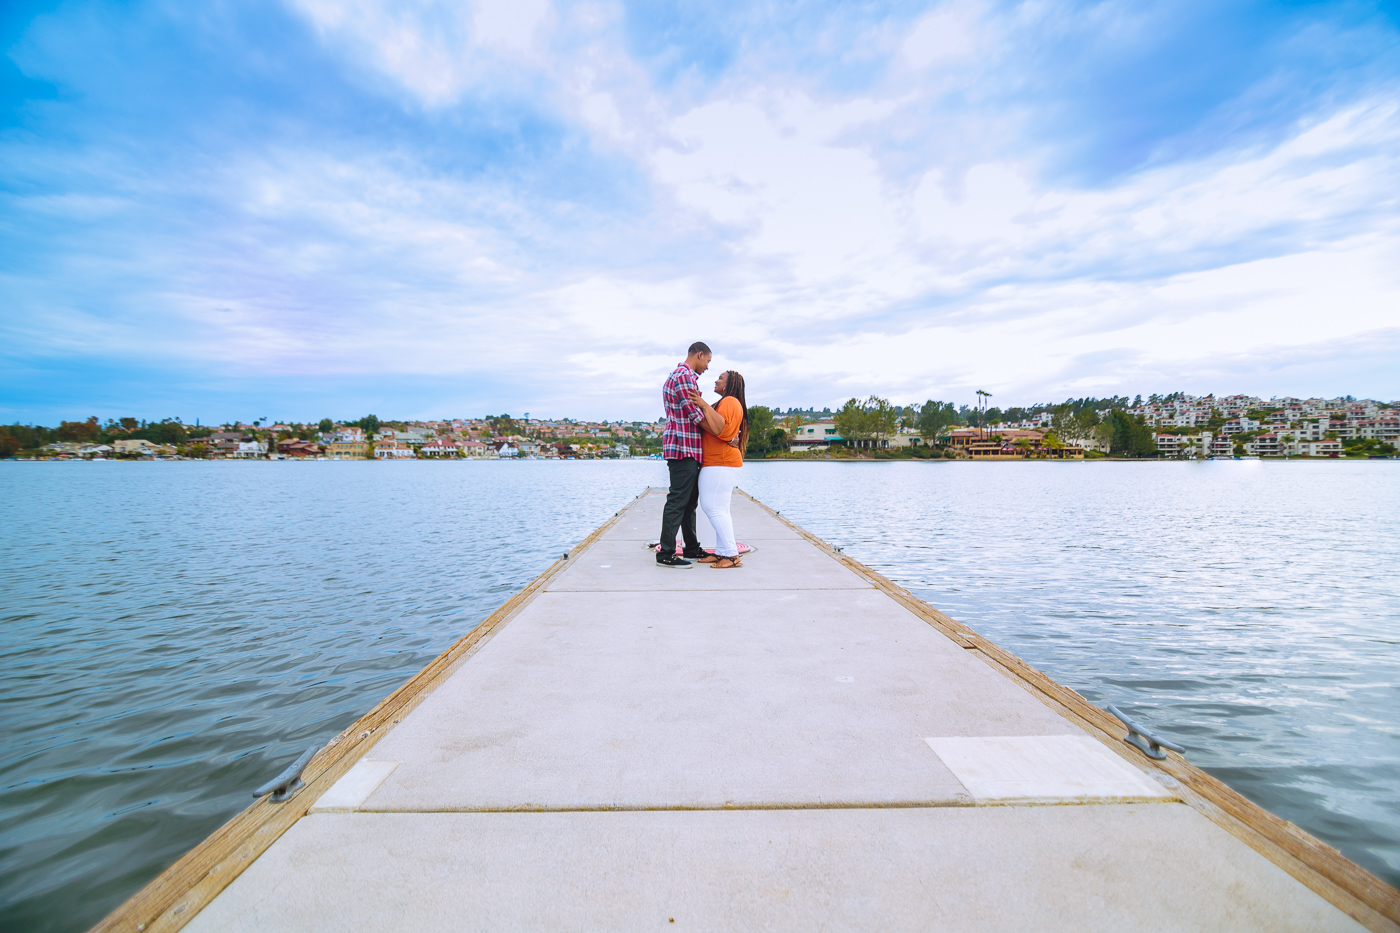 Engagement photo under blue sky and lake